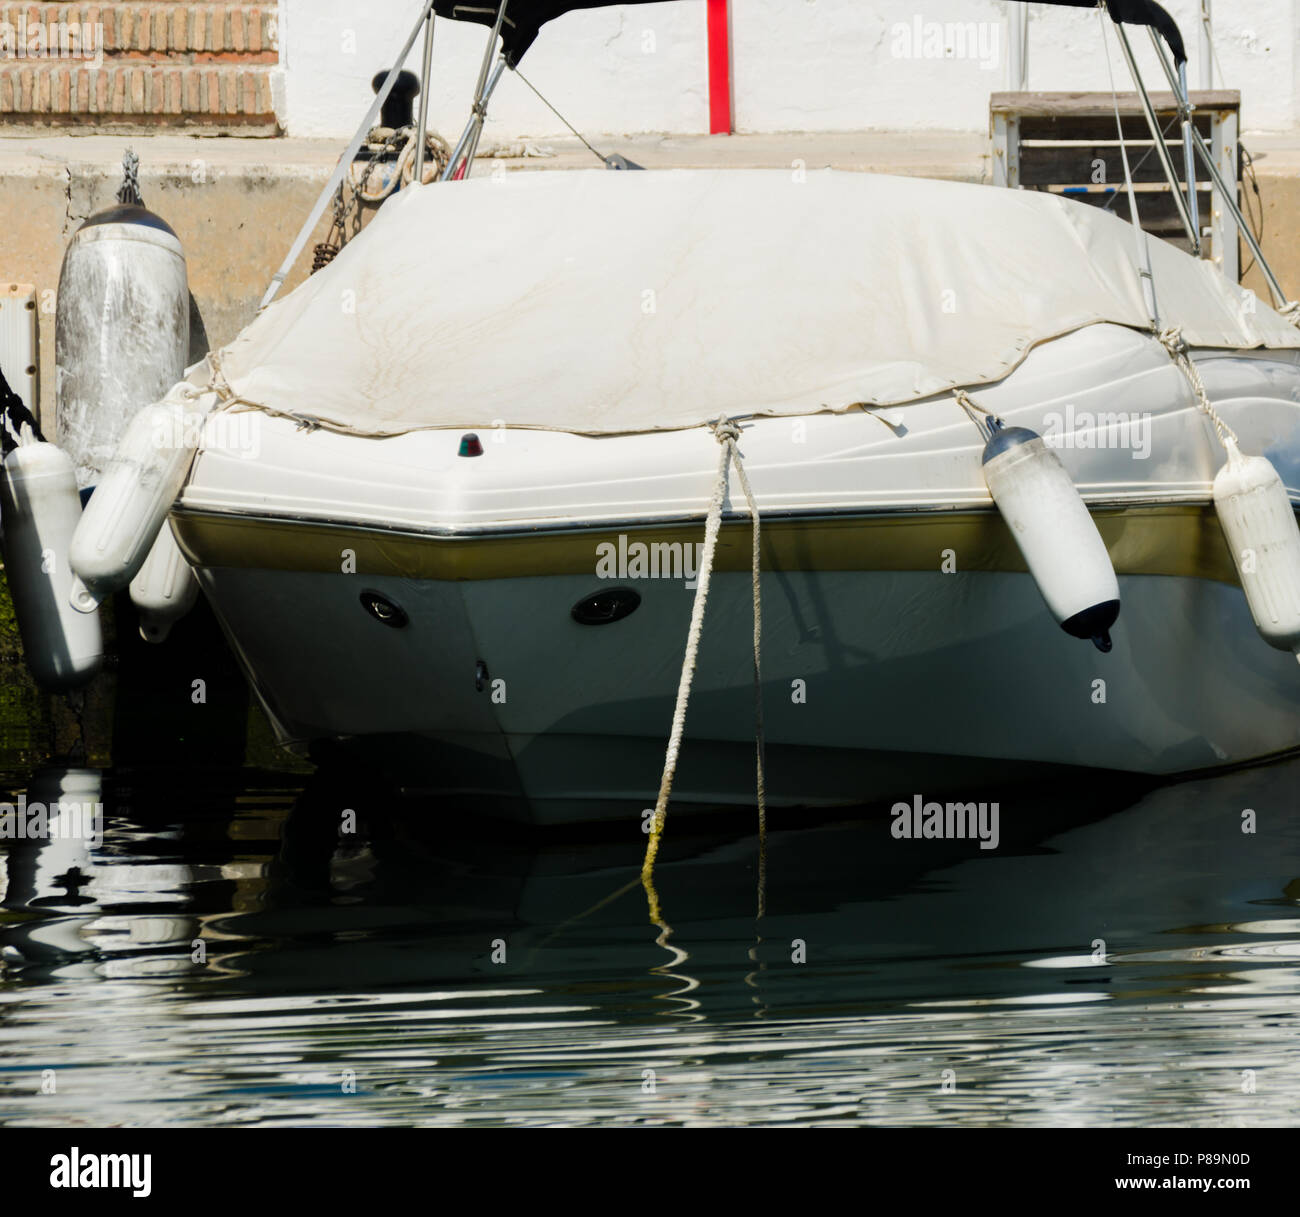 closeup on elements of yachts and motor boats anchored in the harbor, hot day at harbor, marina - Stock Image